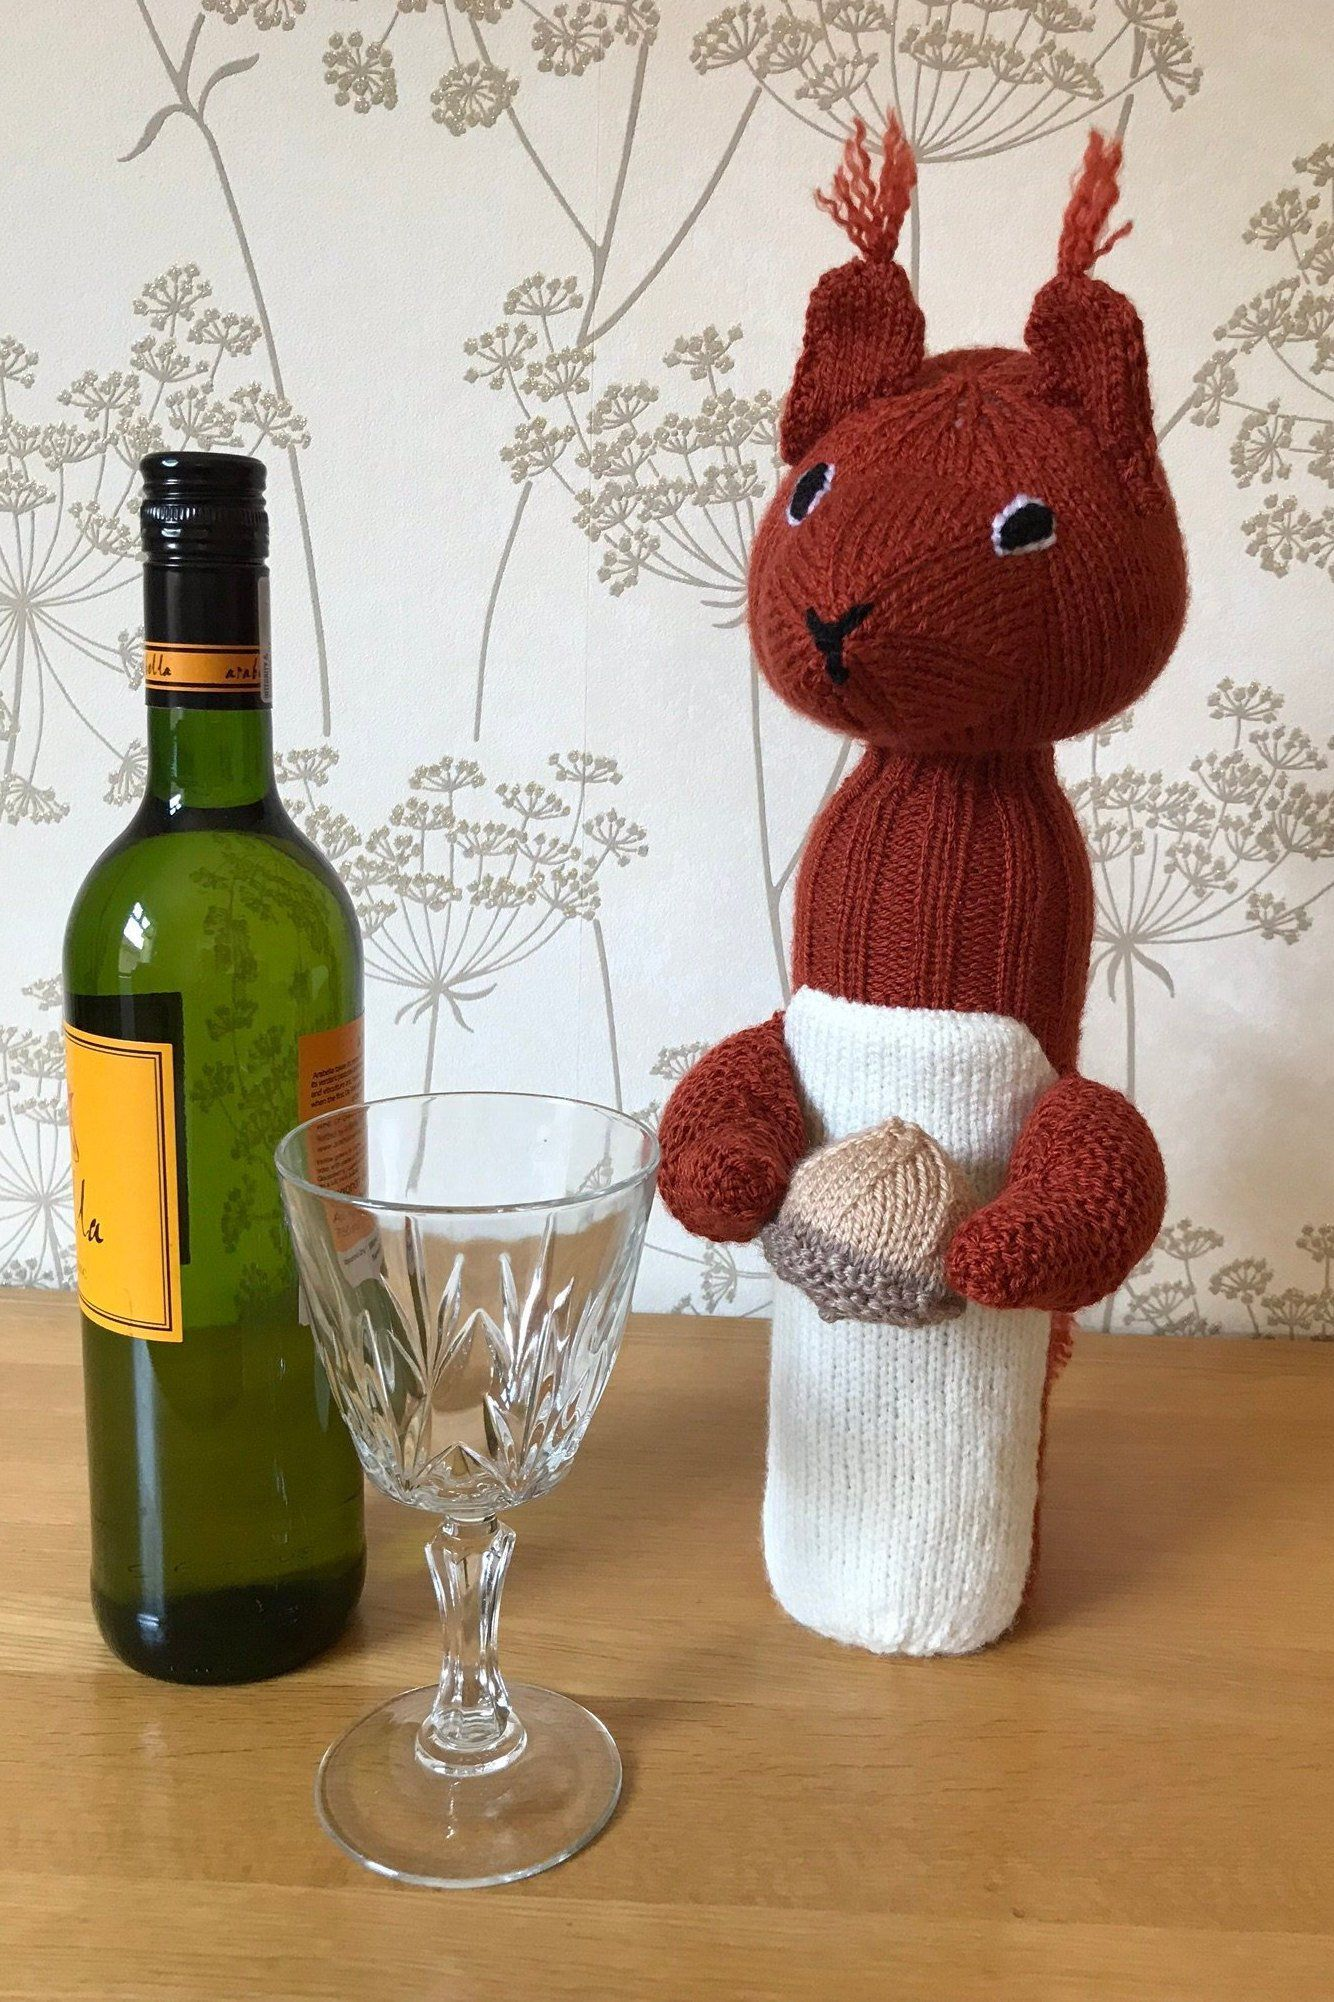 Squirrel Wine Bottle Cover Hand Knitted Etsy Wine Bottle Covers Bottle Cover Unusual Presents